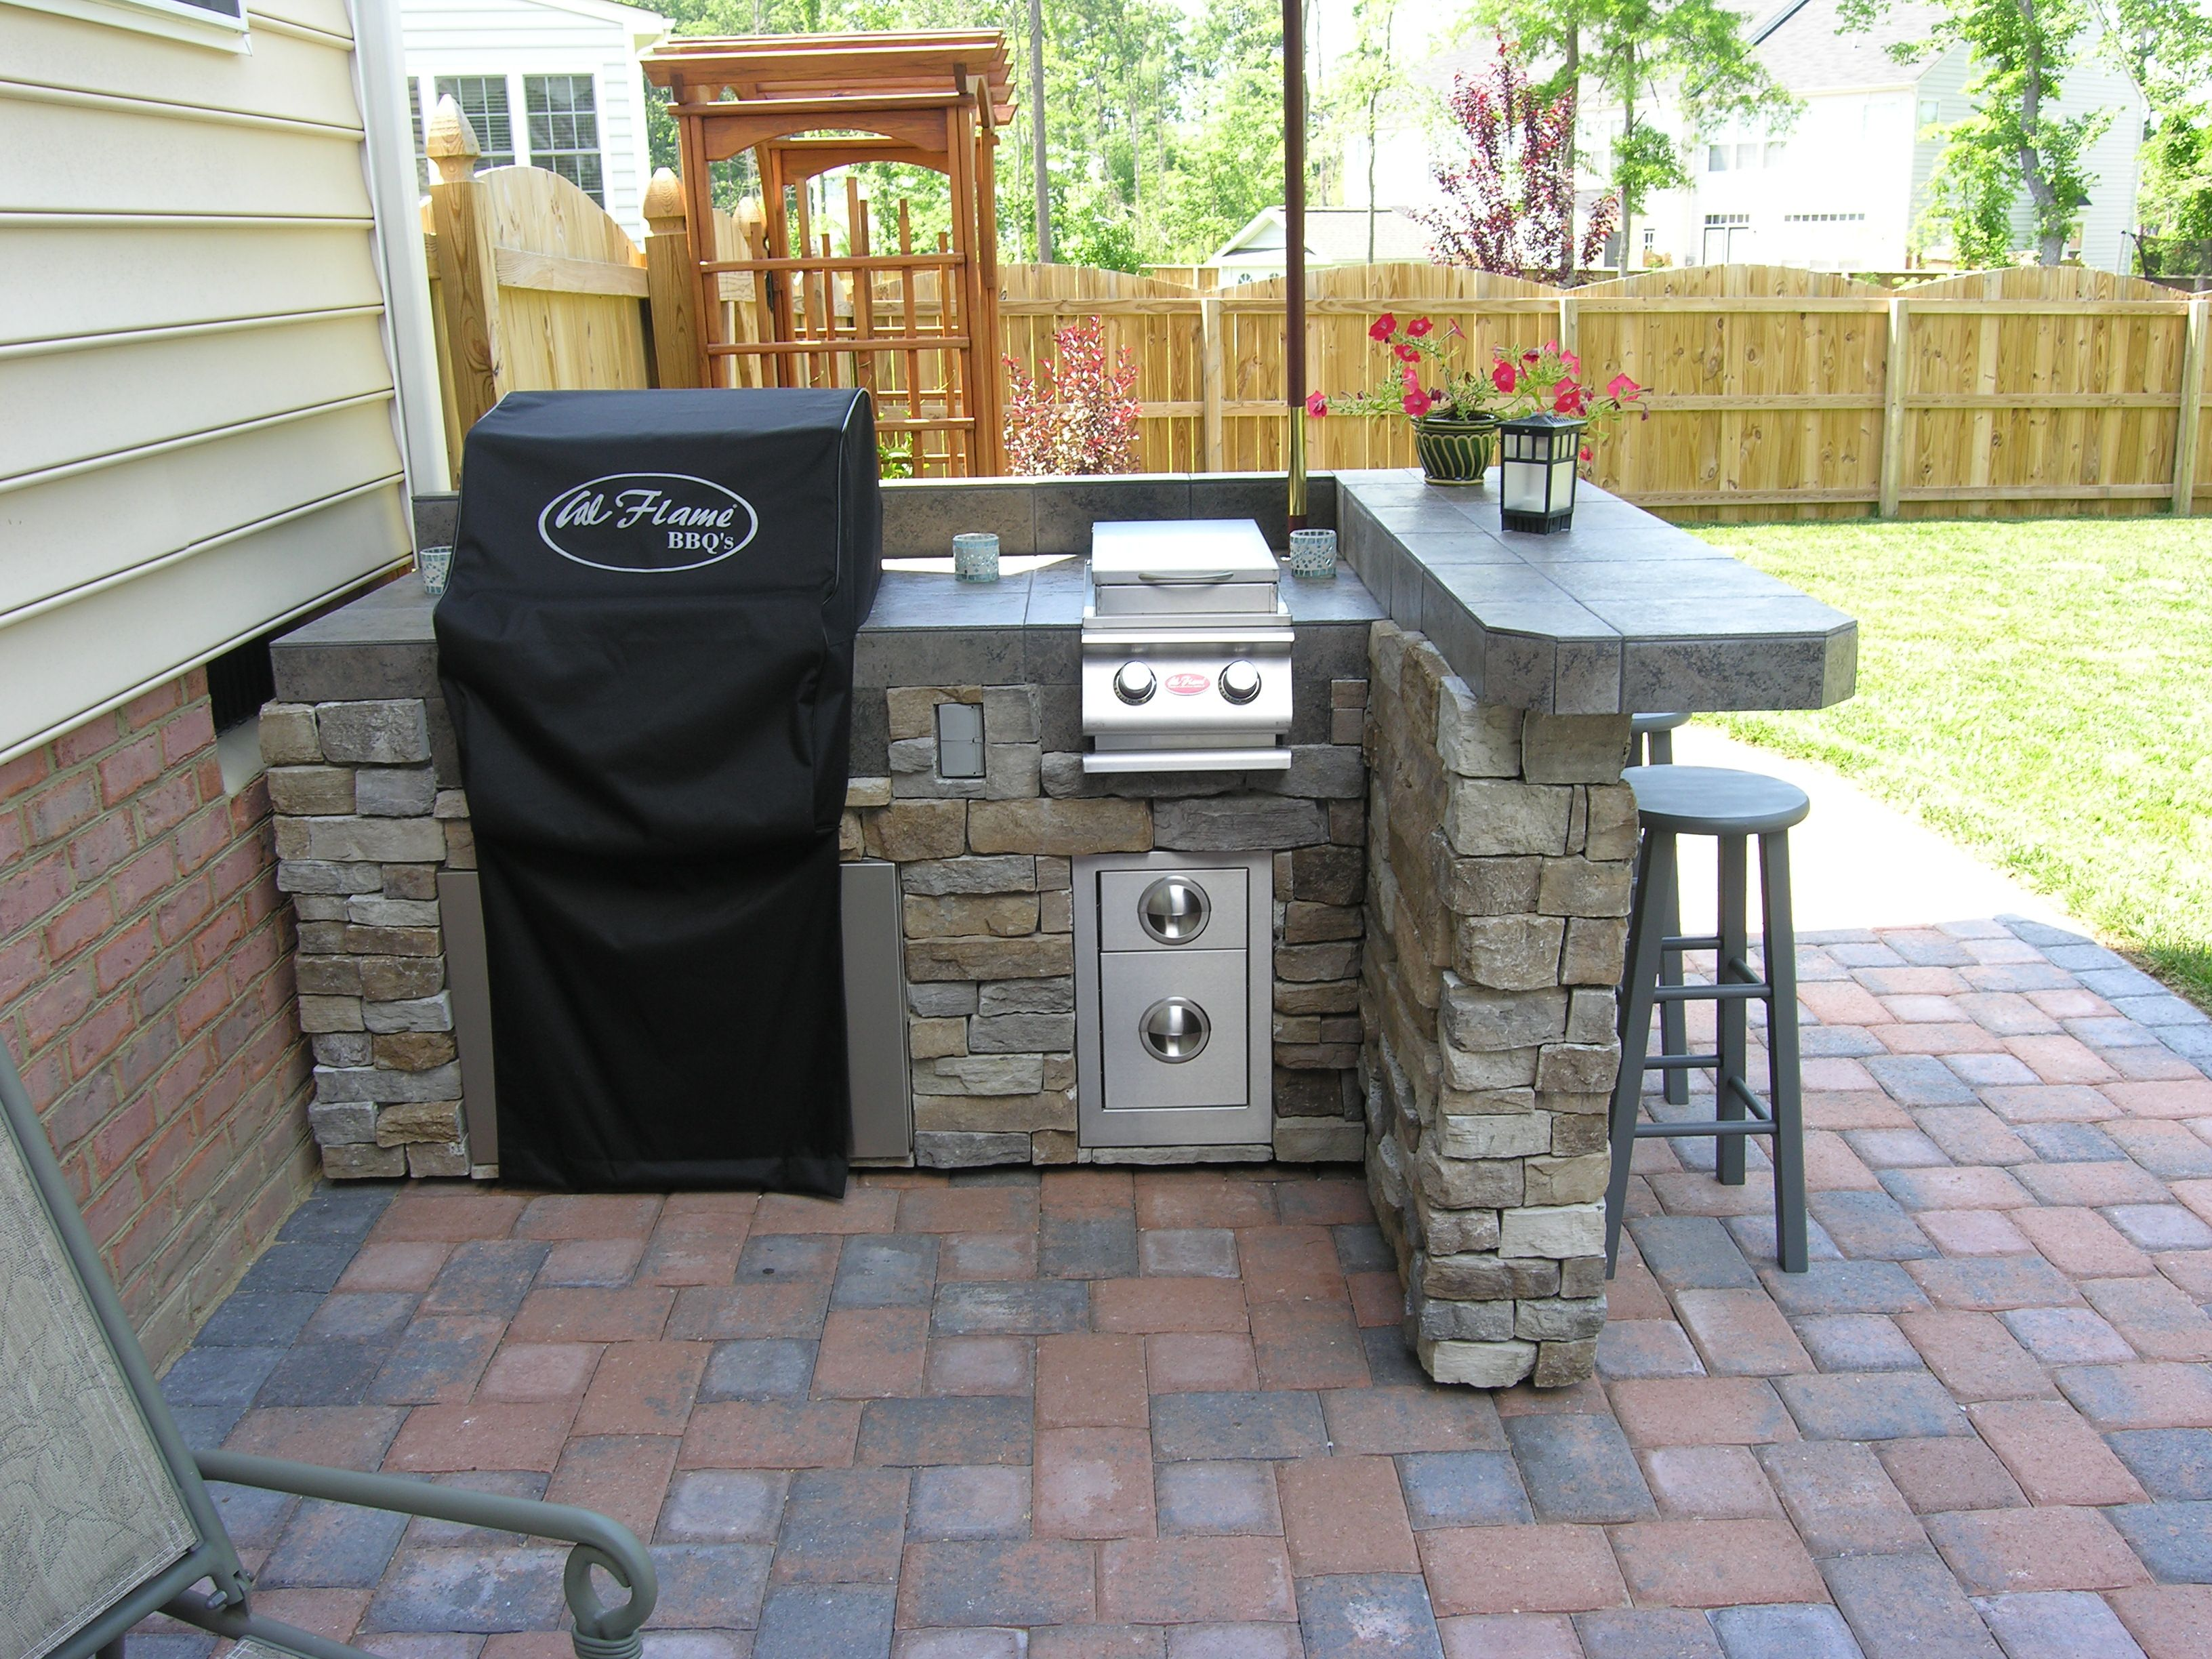 best 25 simple outdoor kitchen ideas on pinterest outdoor bar and grill diy outdoor kitchen and patio ideas - Inexpensive Outdoor Kitchen Ideas